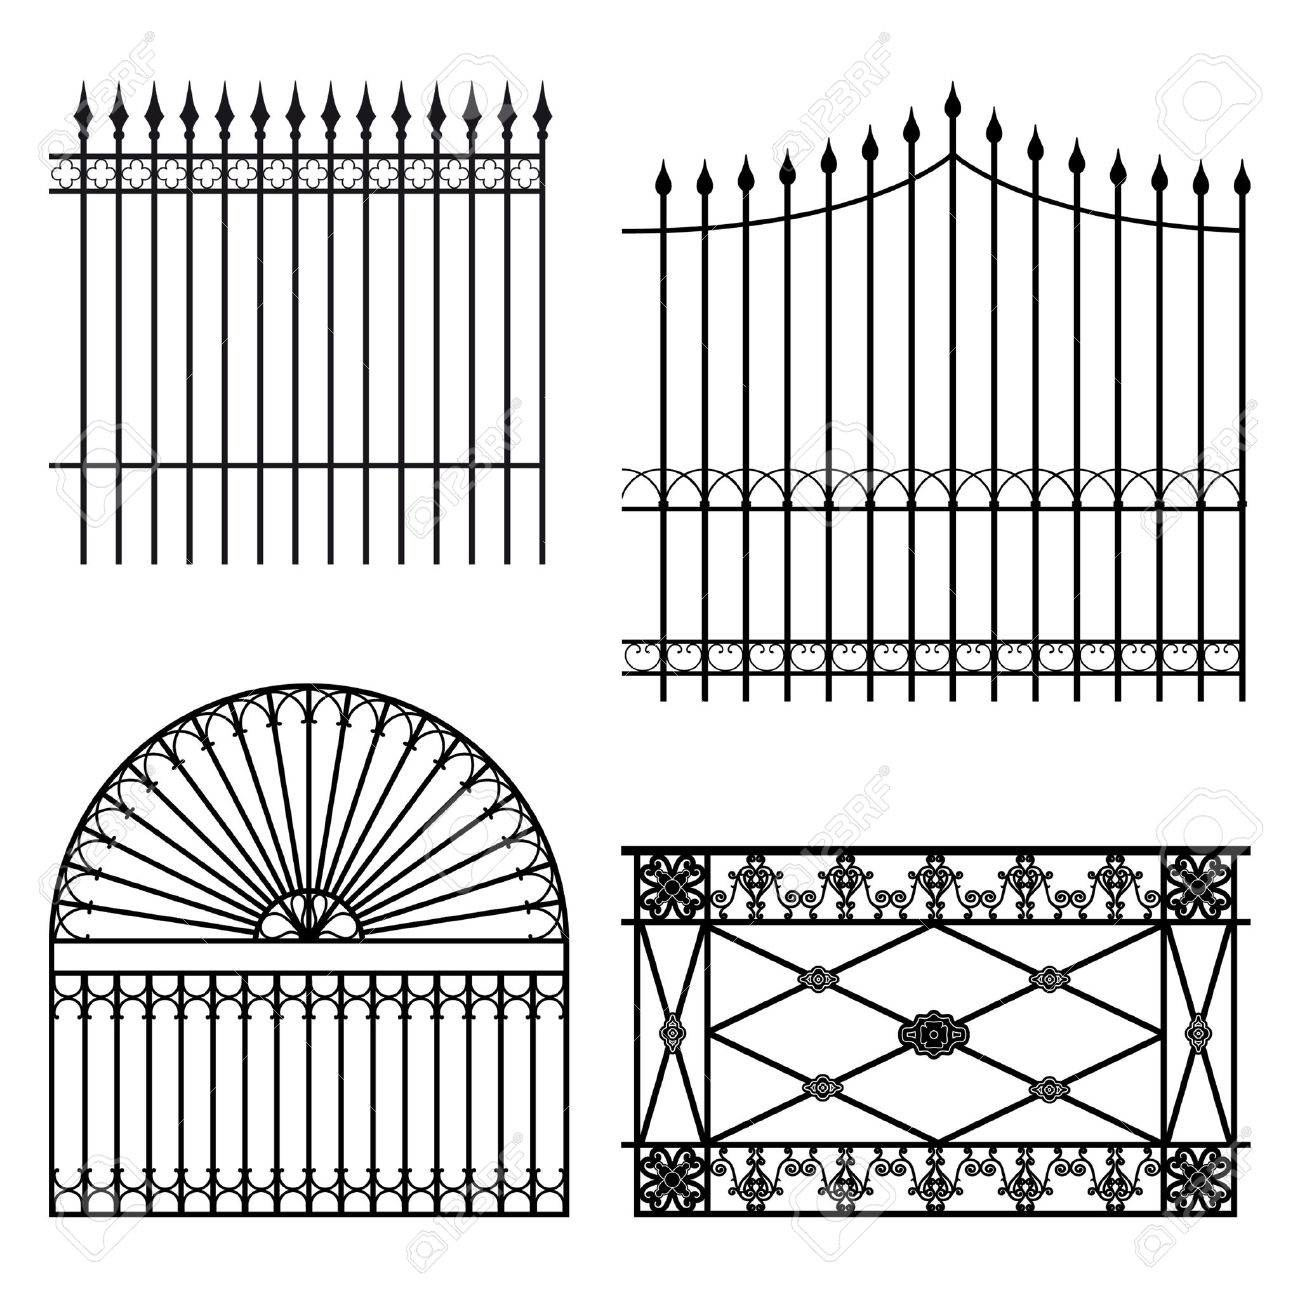 Iron grate clipart #16